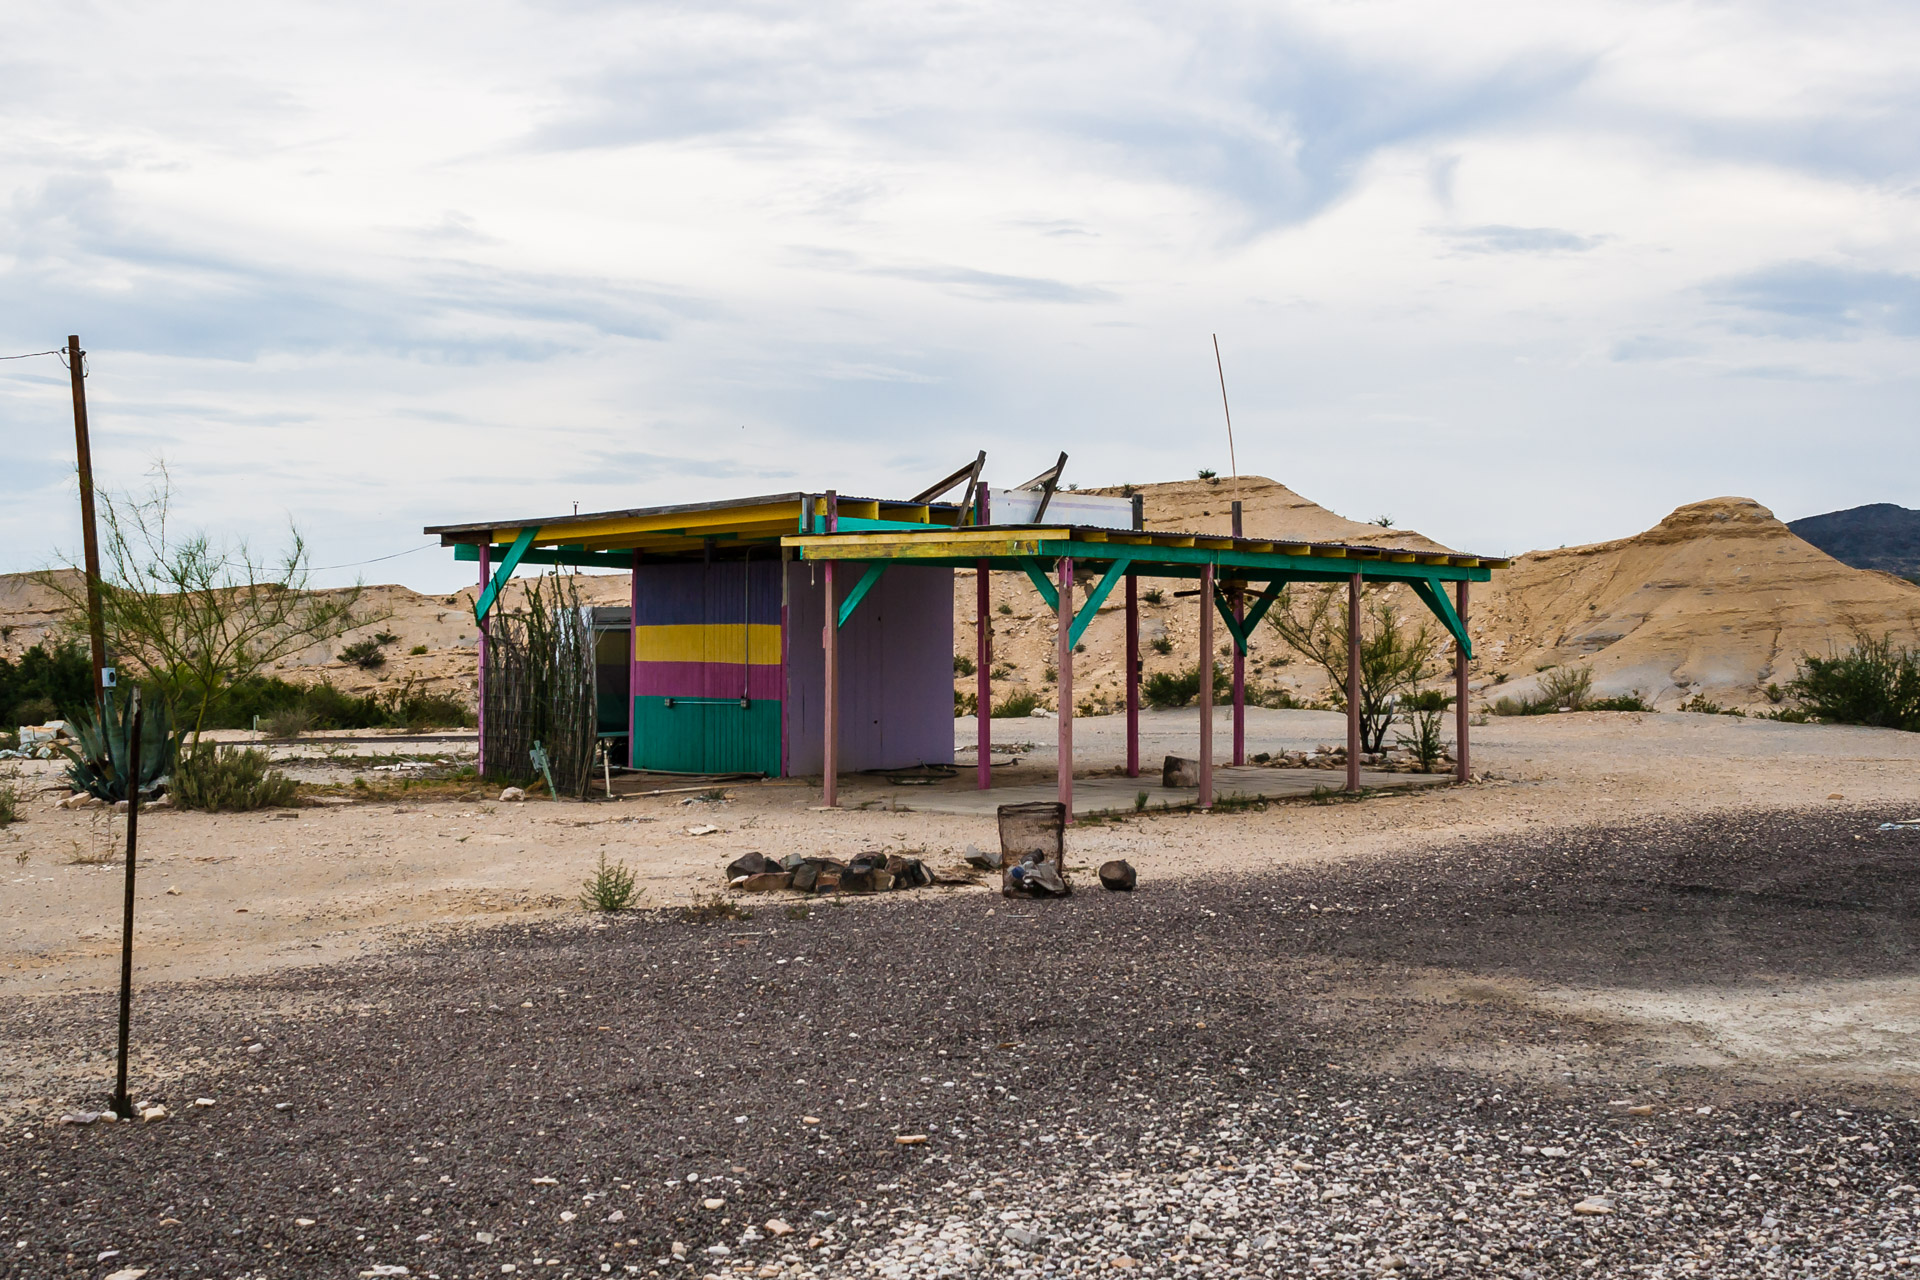 Study Butte, Texas - Colorful Desert Shack